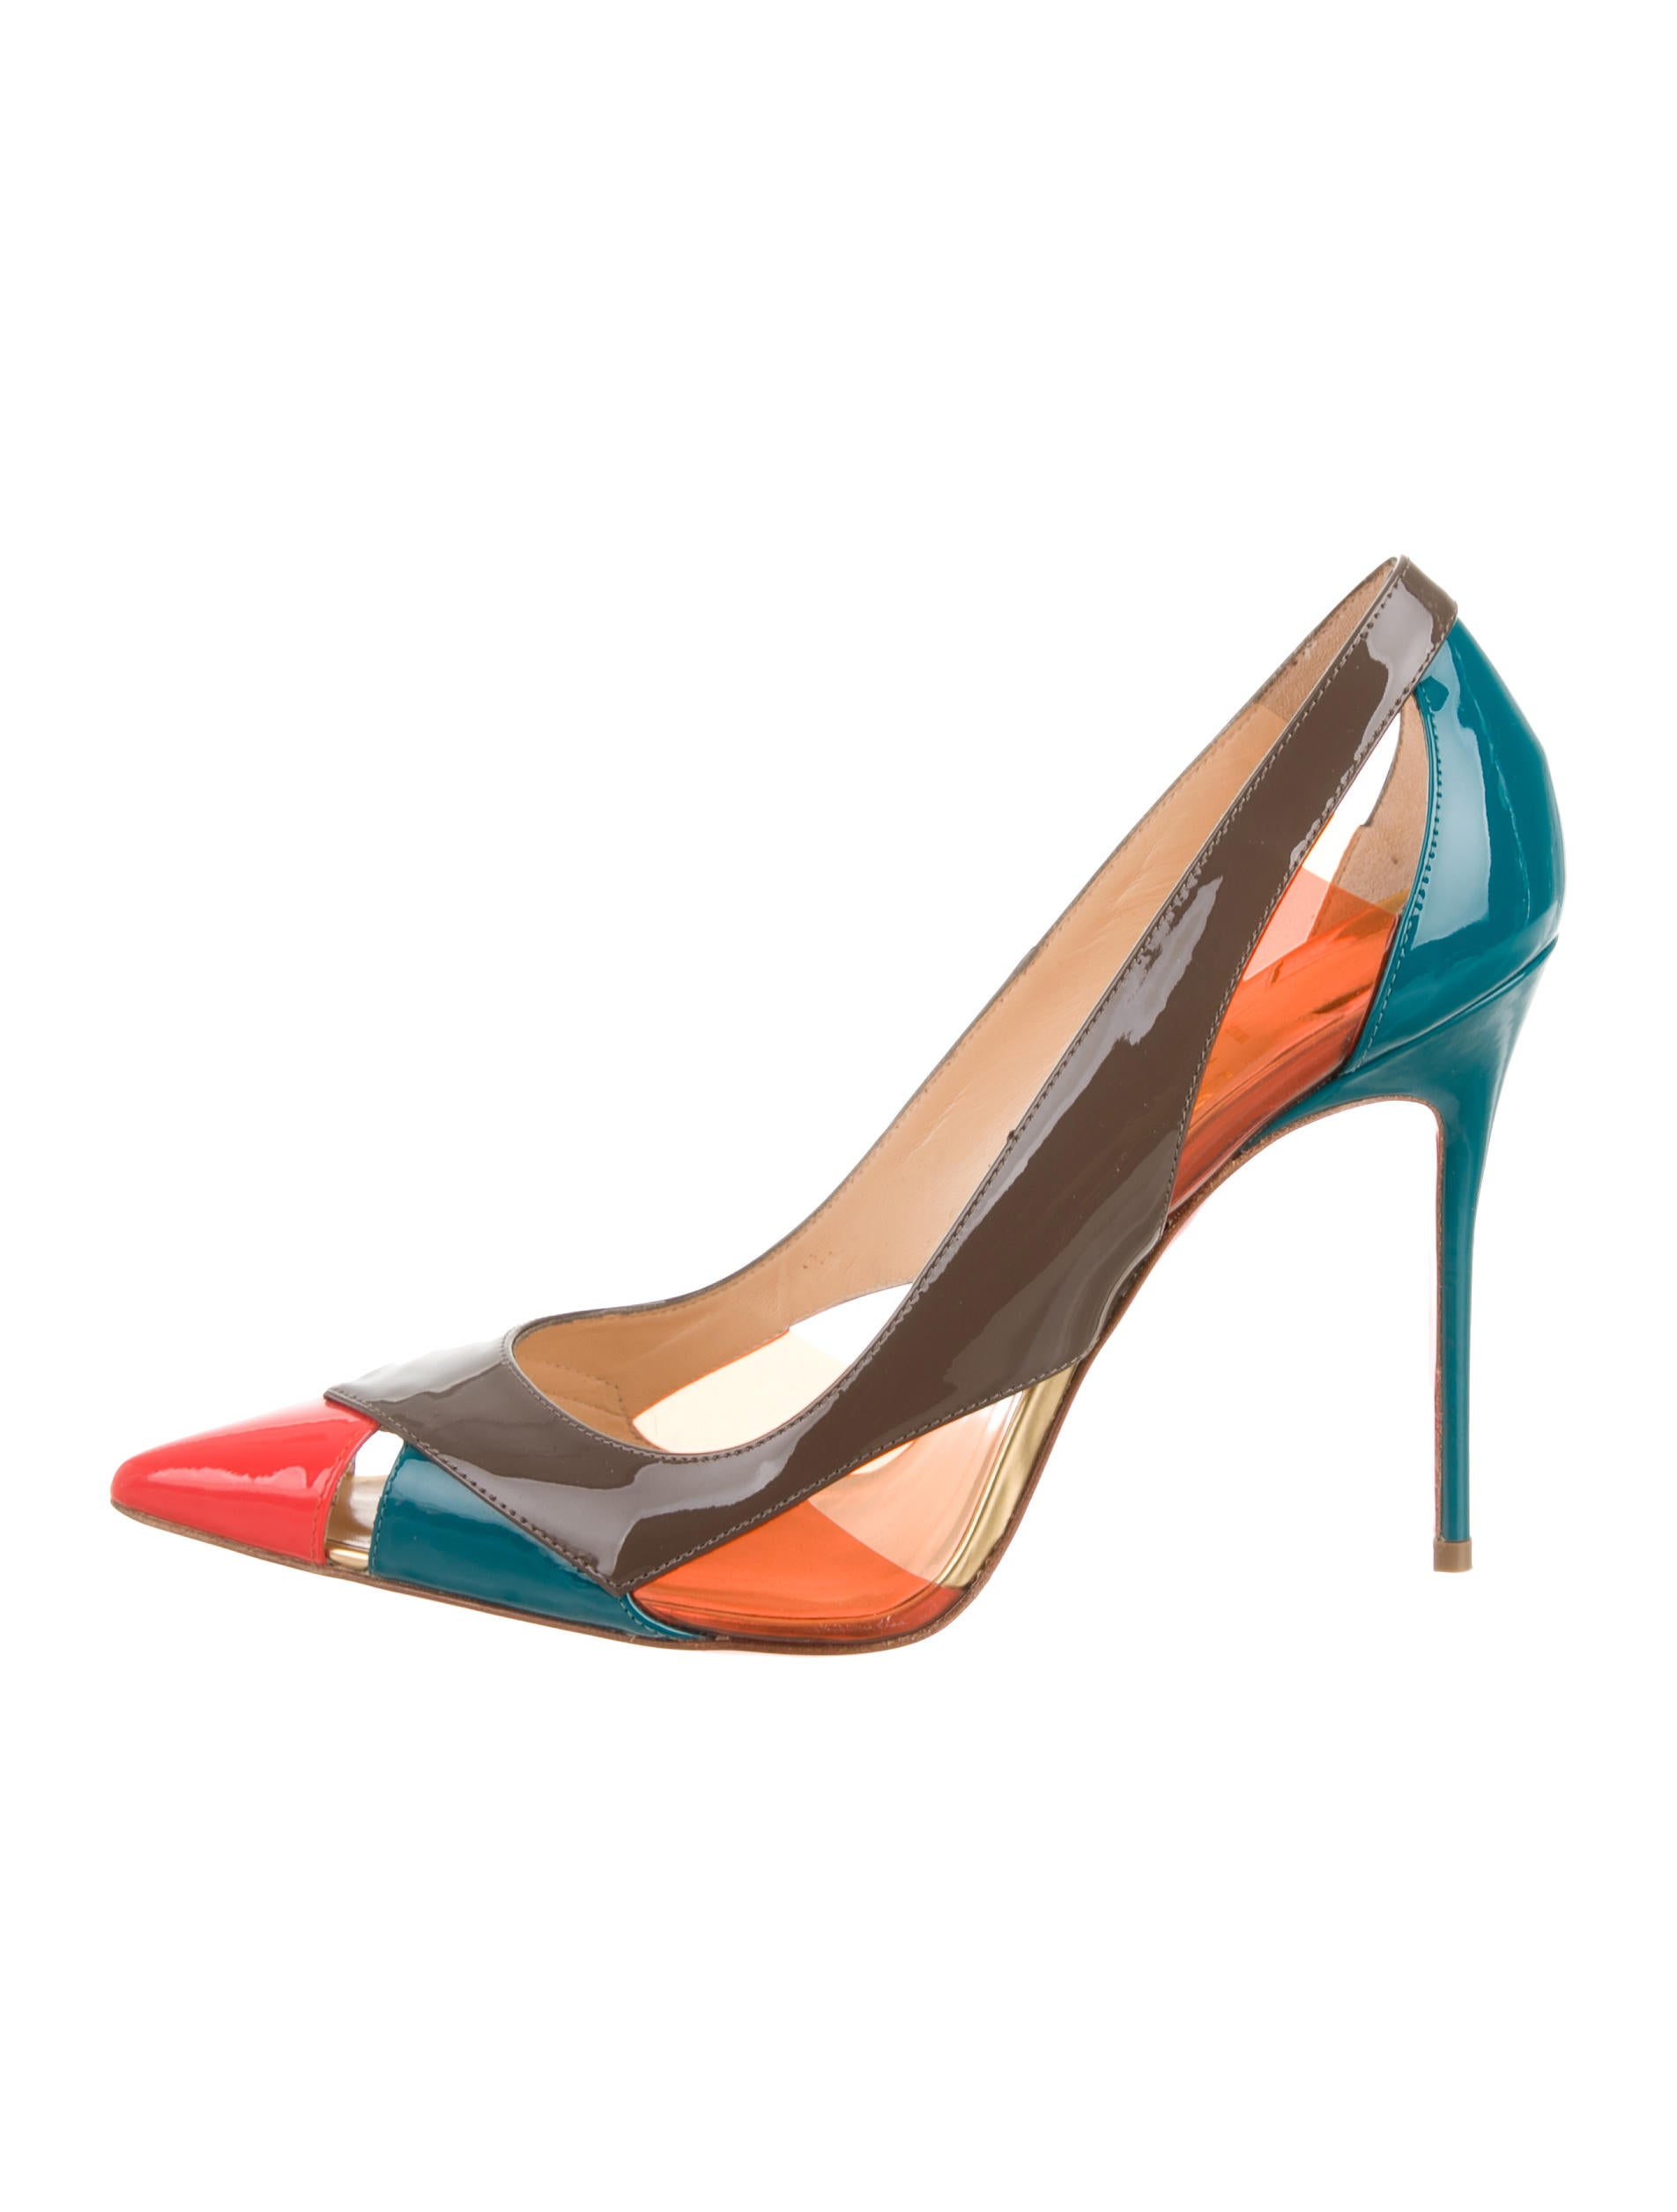 Christian Louboutin Colorblock Pumps - Shoes - CHT43557 | The RealReal